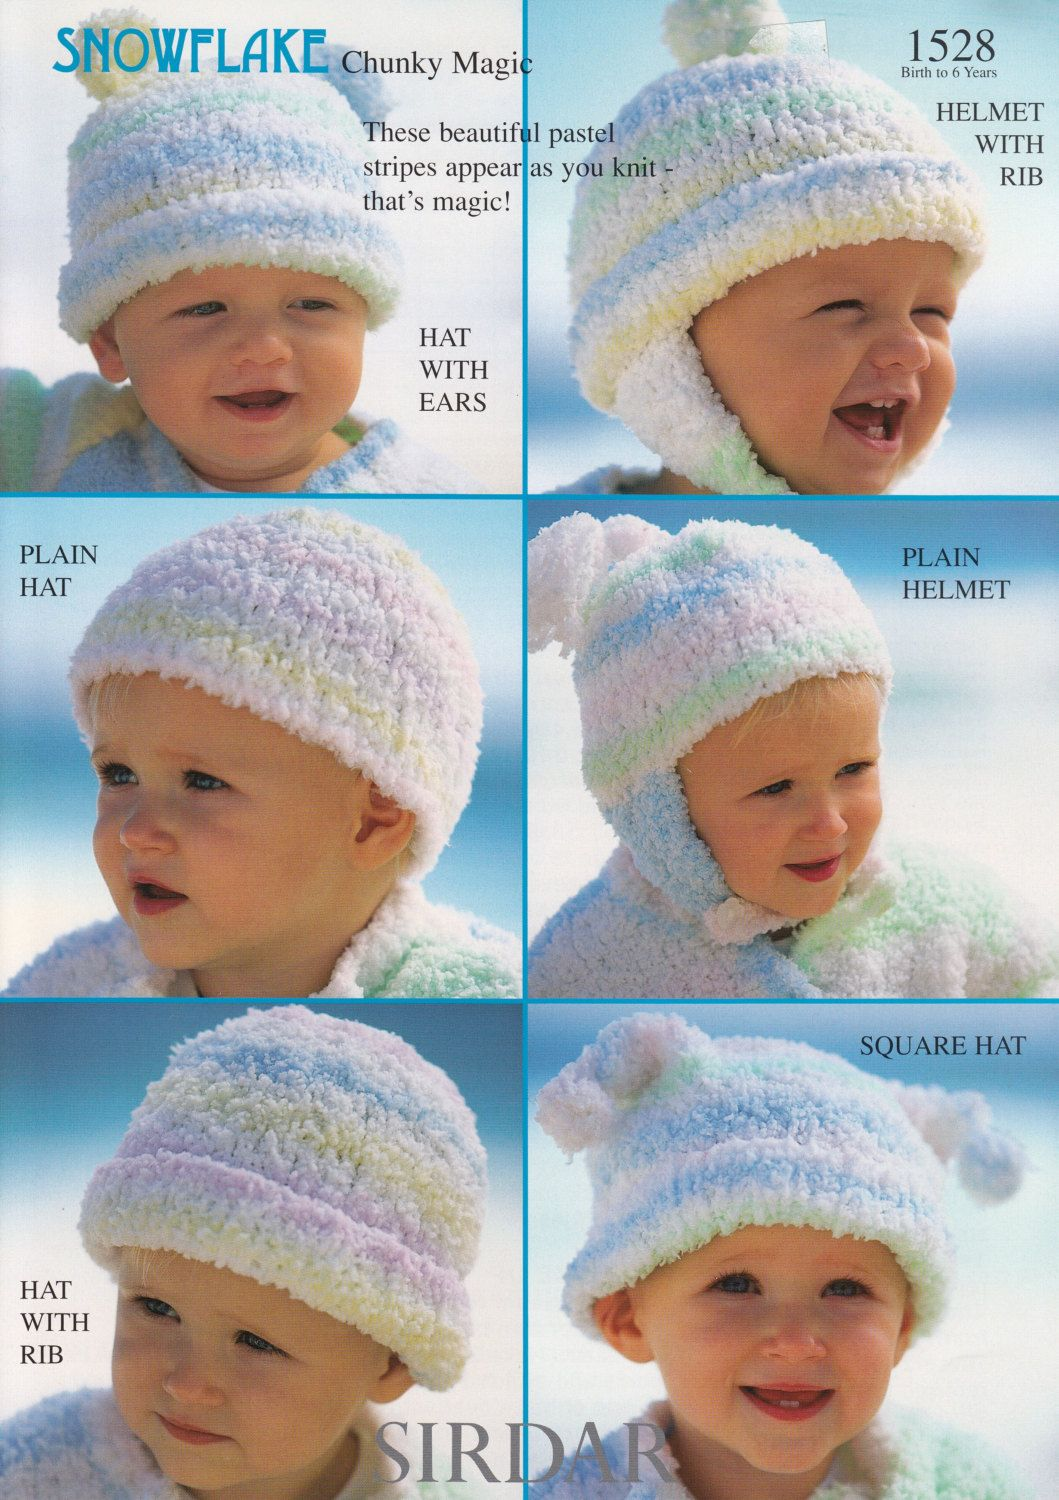 Baby hat knitting patterns sirdar snowflake chunky magic baby hat knitting patterns sirdar snowflake chunky magic knitting pattern knitted hat patterns for bankloansurffo Image collections